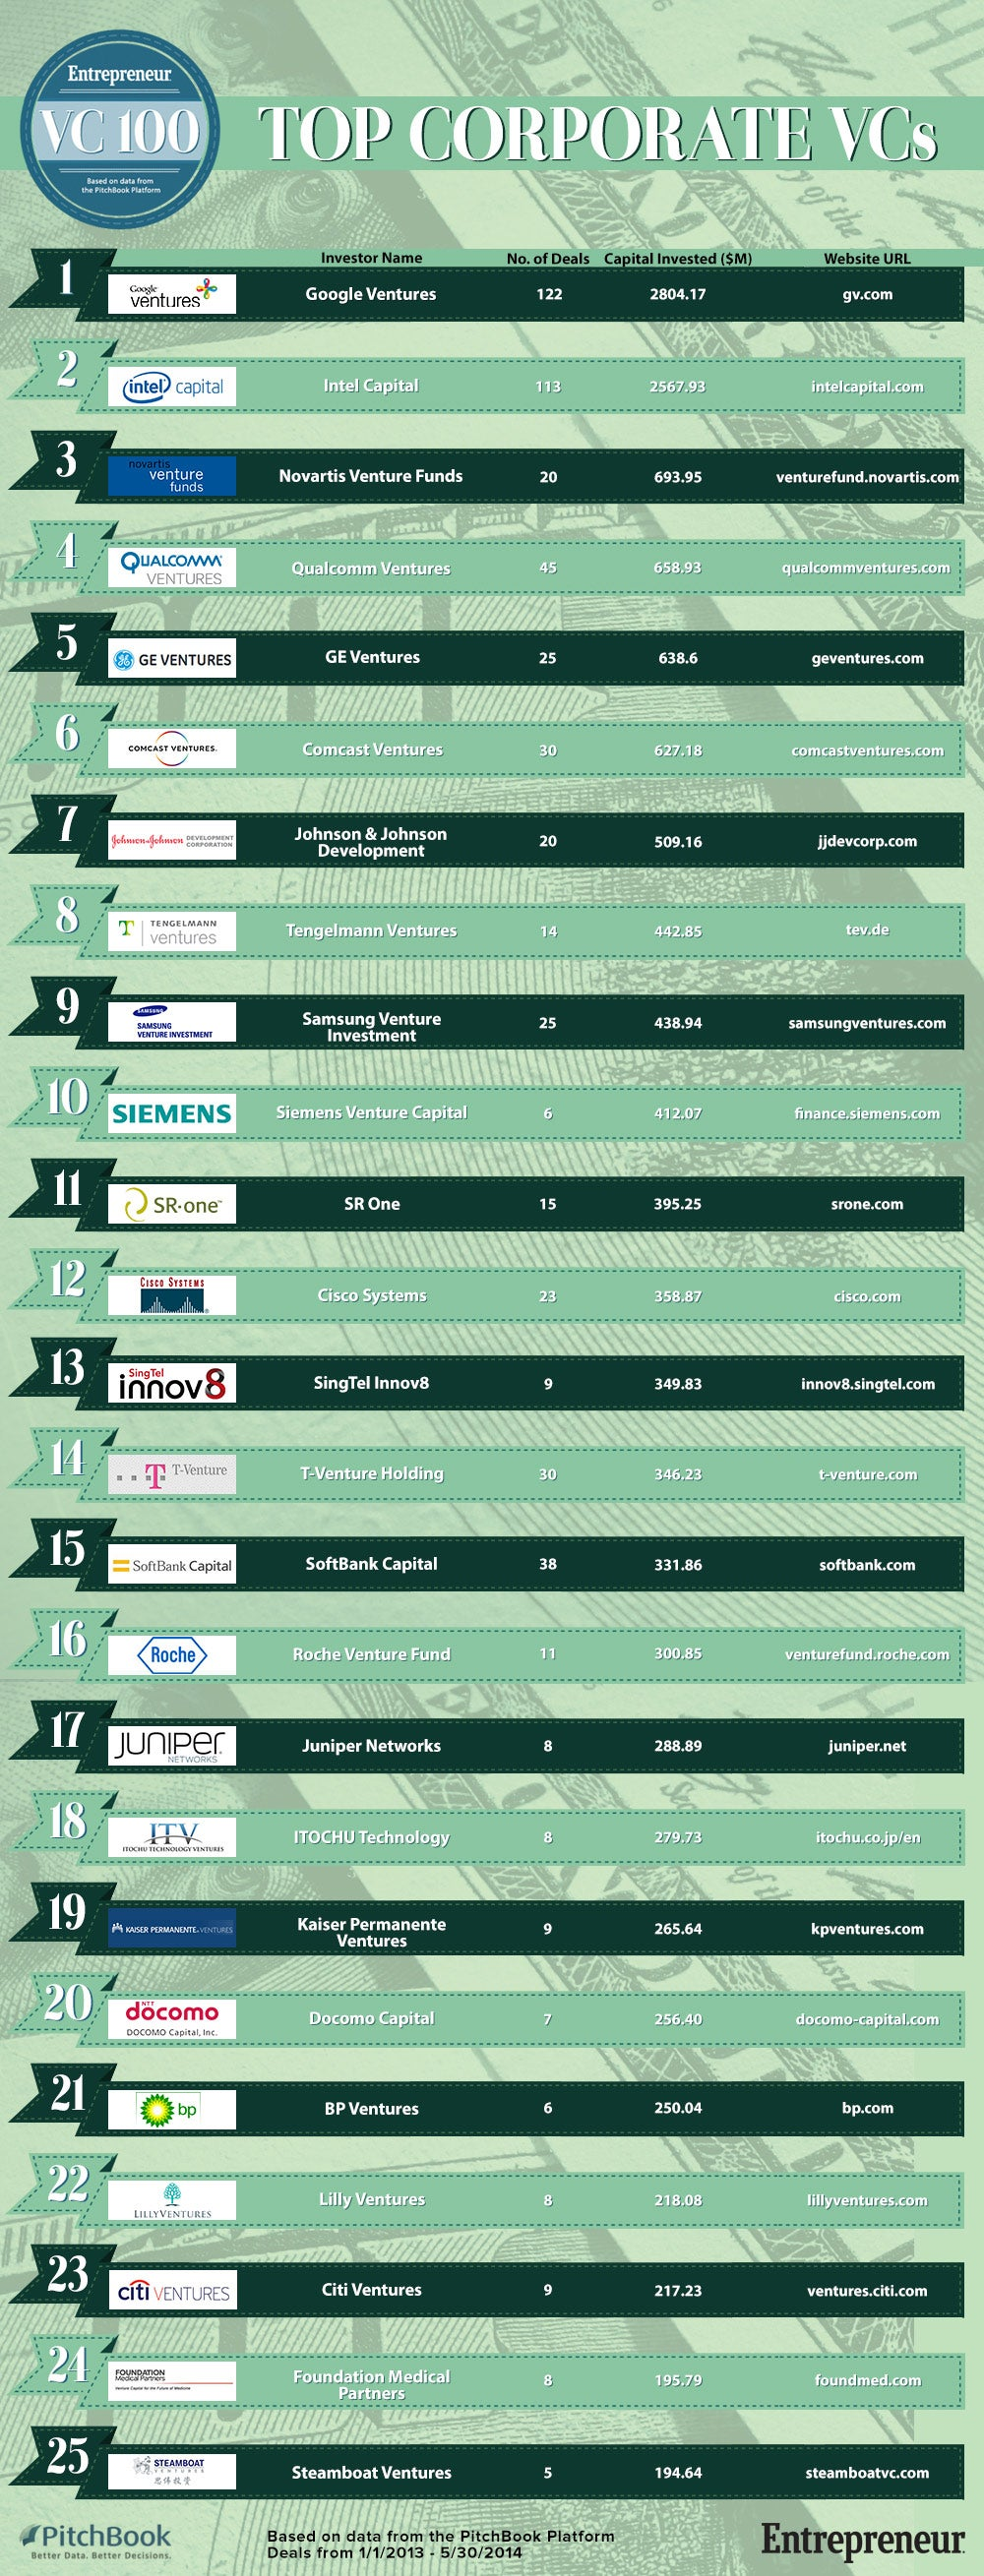 25 most active corporate VCs - money